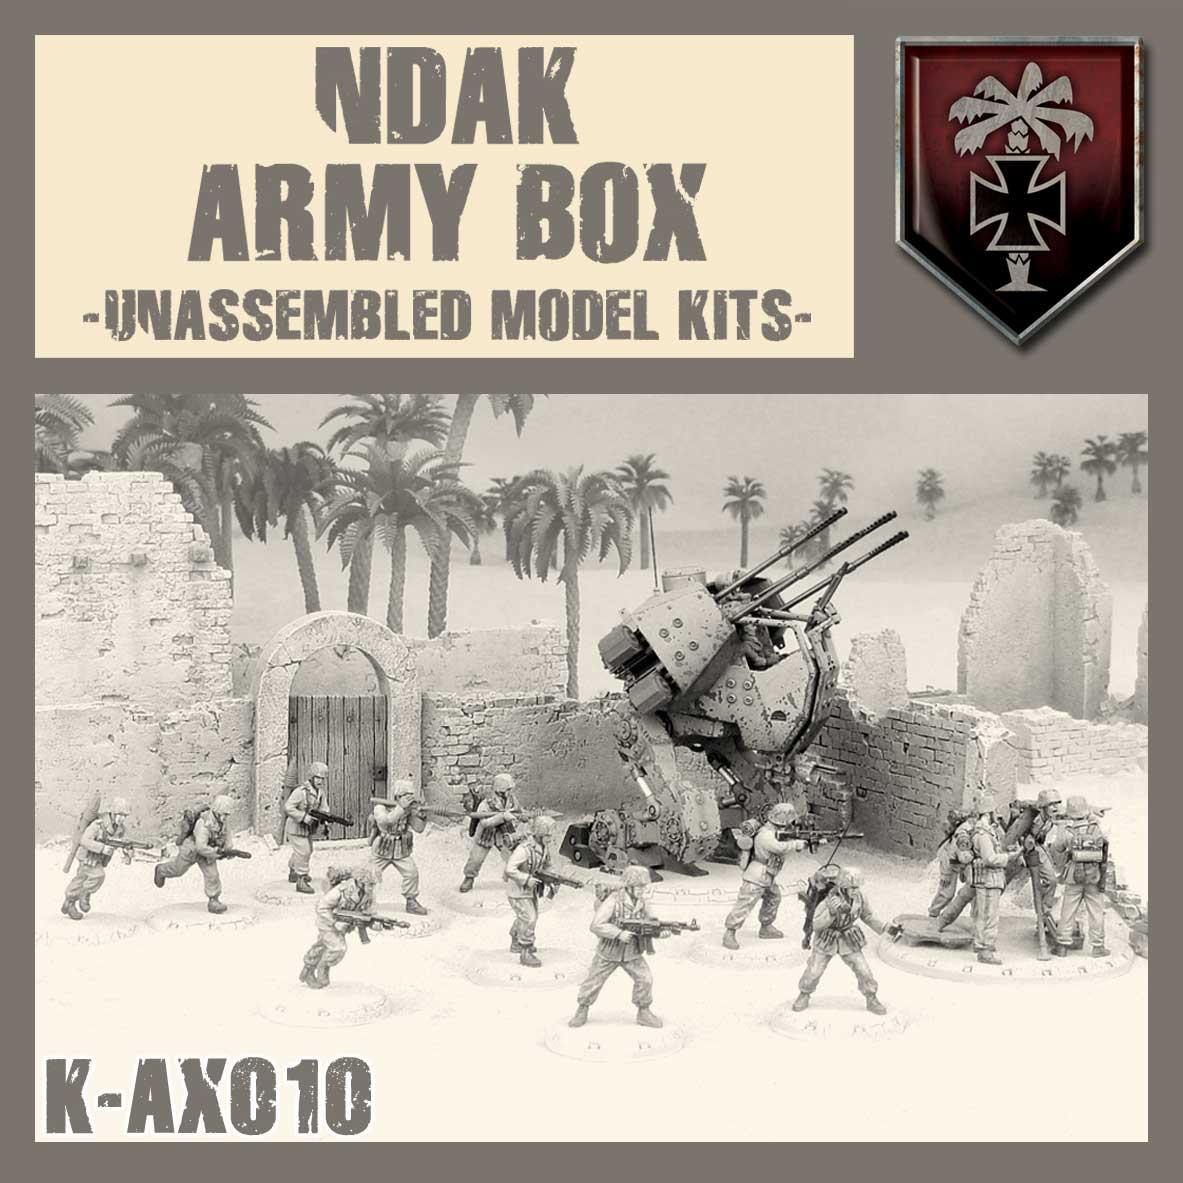 NDAK Army Box Kit